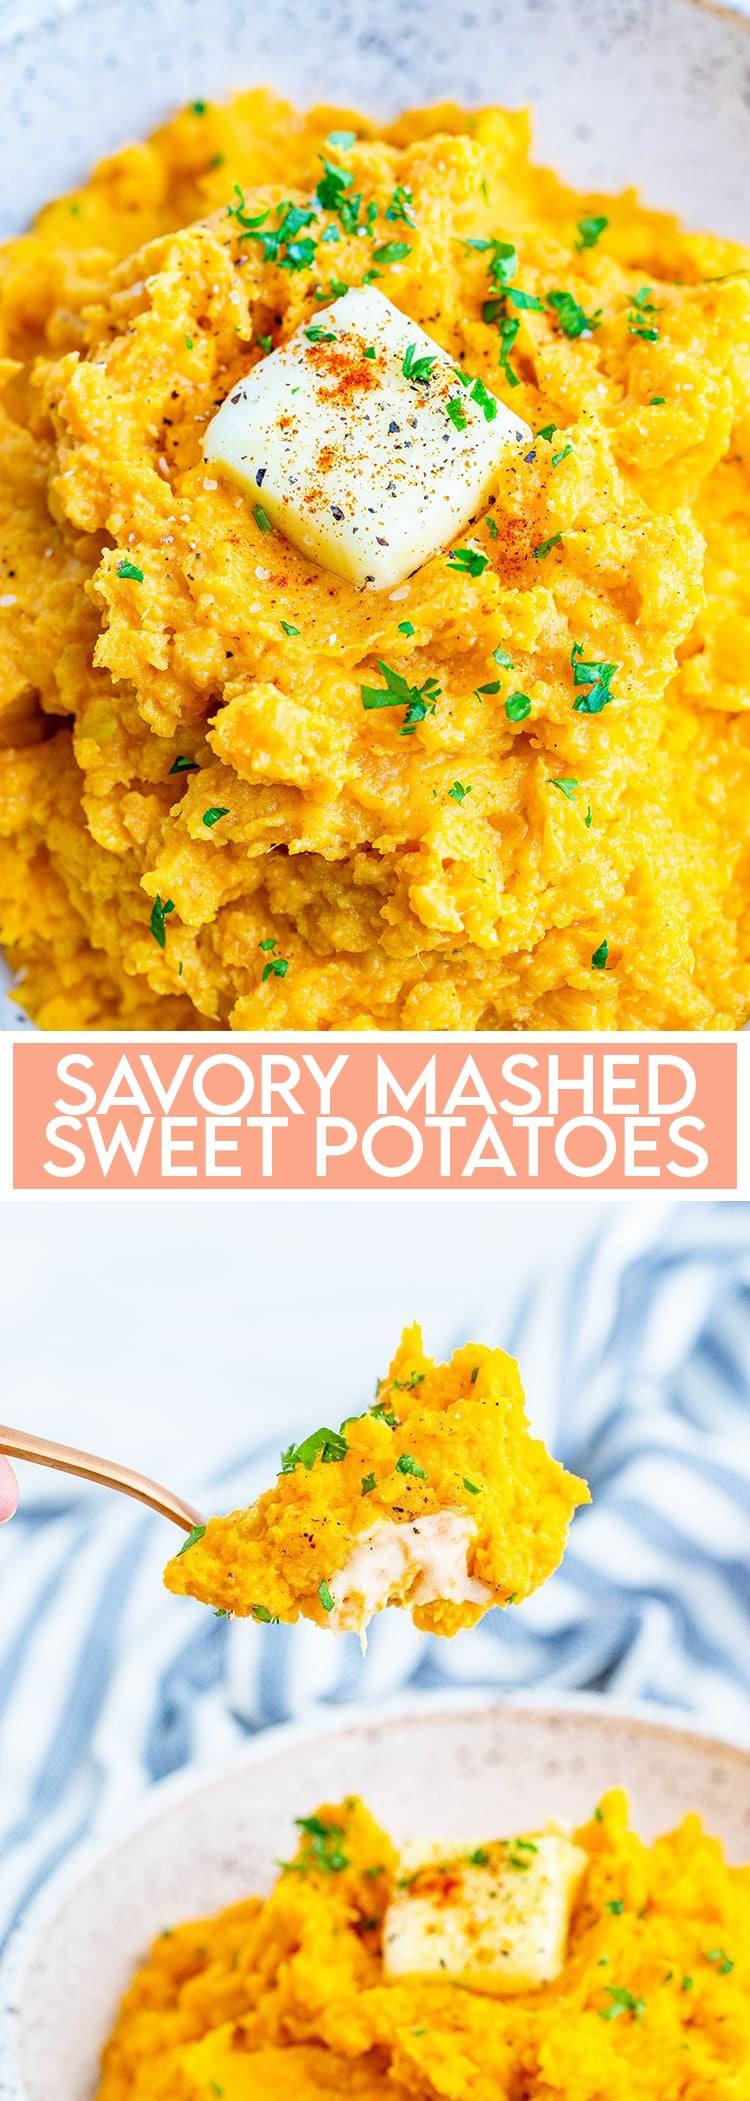 A collage of two photos of mashed sweet potatoes. The first is a close up of the sweet potatoes with a pat of butter on top. The second is a spoonful of sweet potatoes coming out of the bowl.